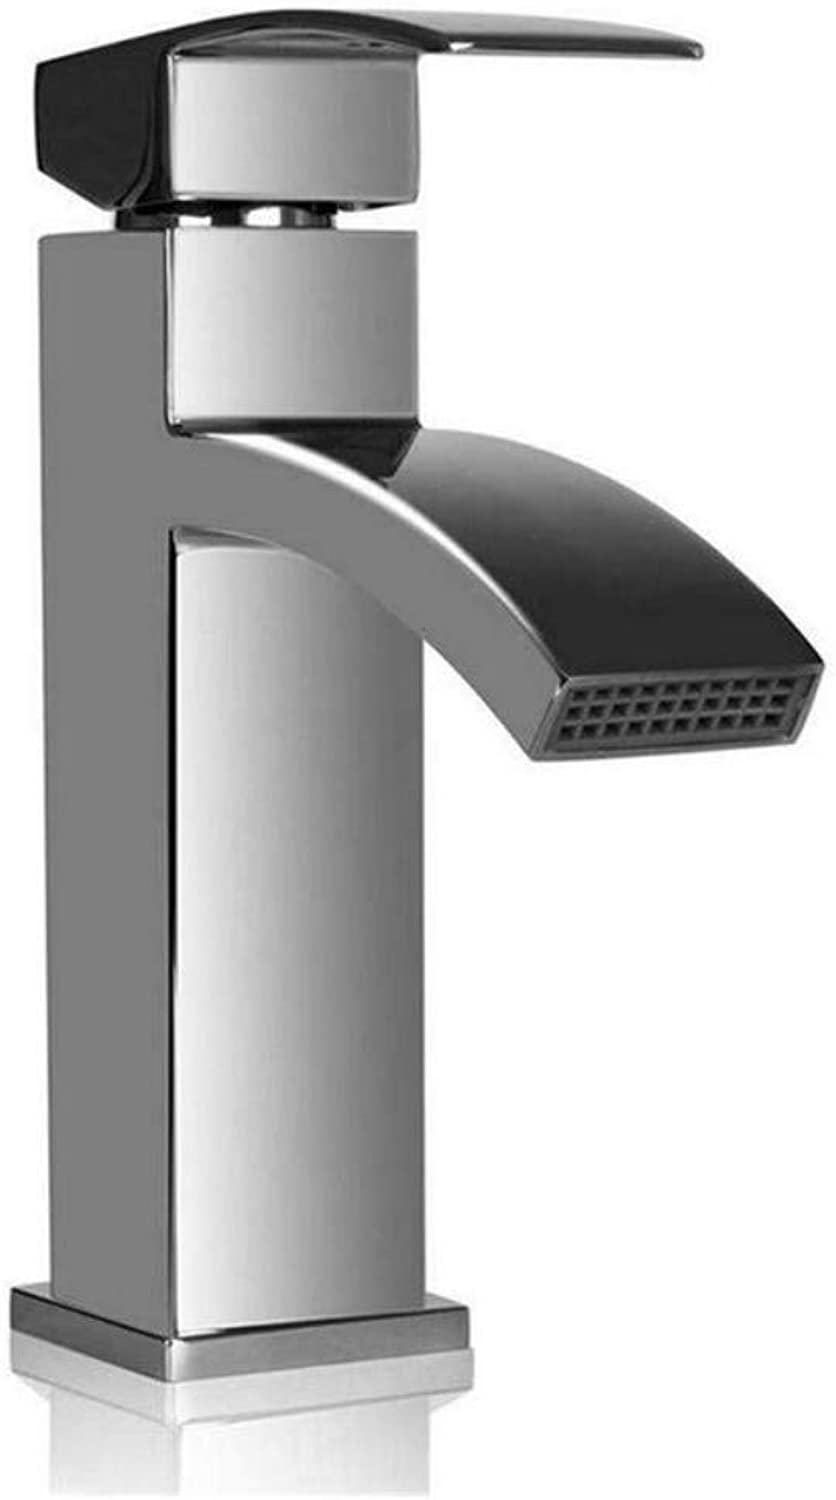 Modern Double Basin Sink Hot and Cold Water Faucet Taps Mixer Tap Single Handle Faucet Bathroom